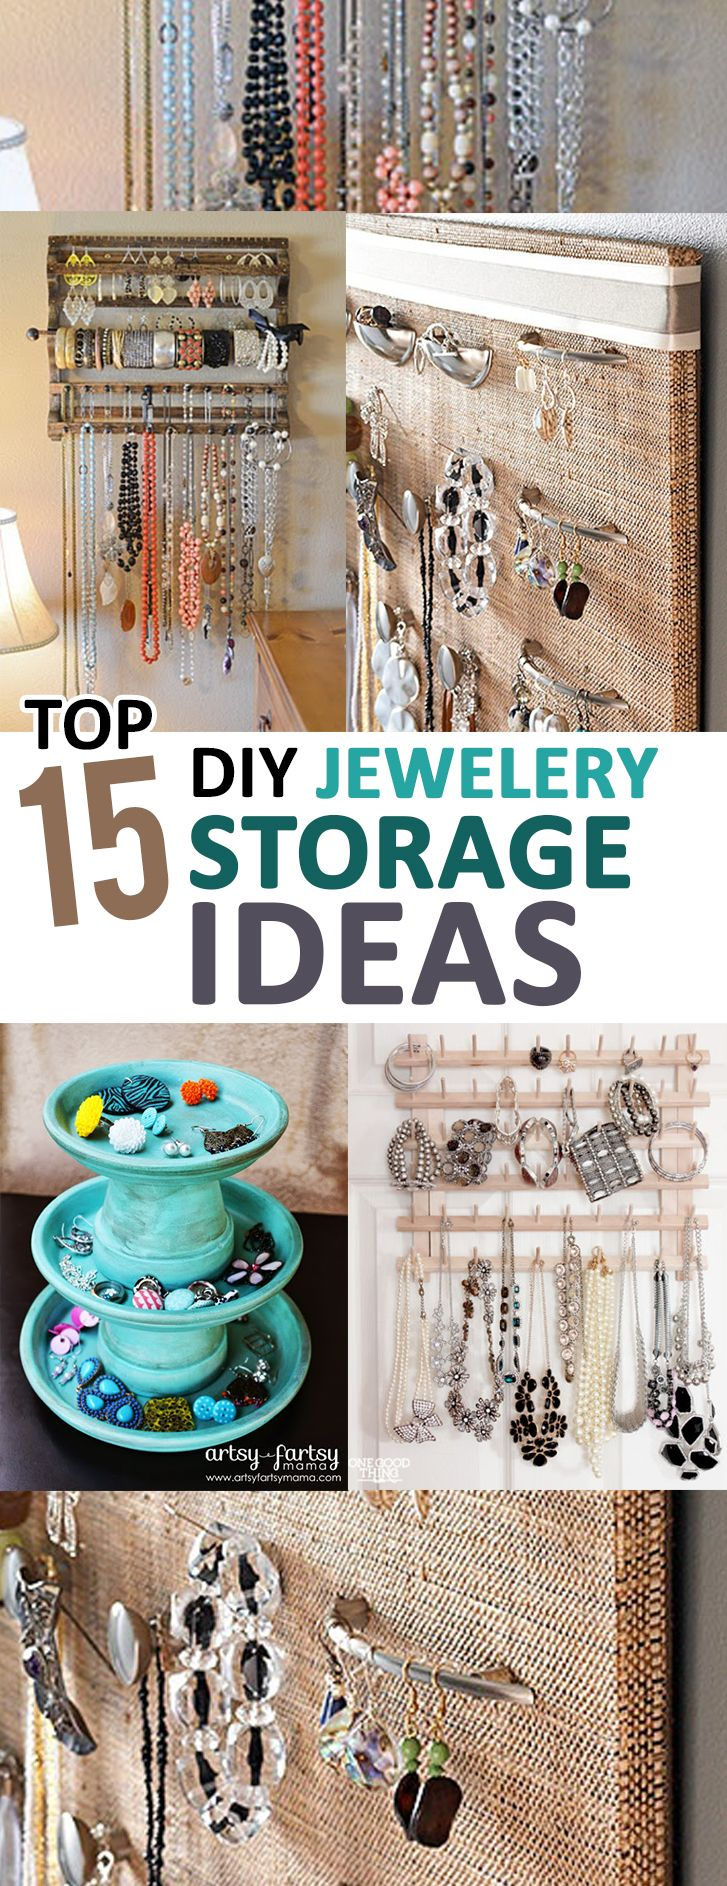 Best 25+ Diy jewelry organizer ideas on Pinterest | Diy jewelry ...